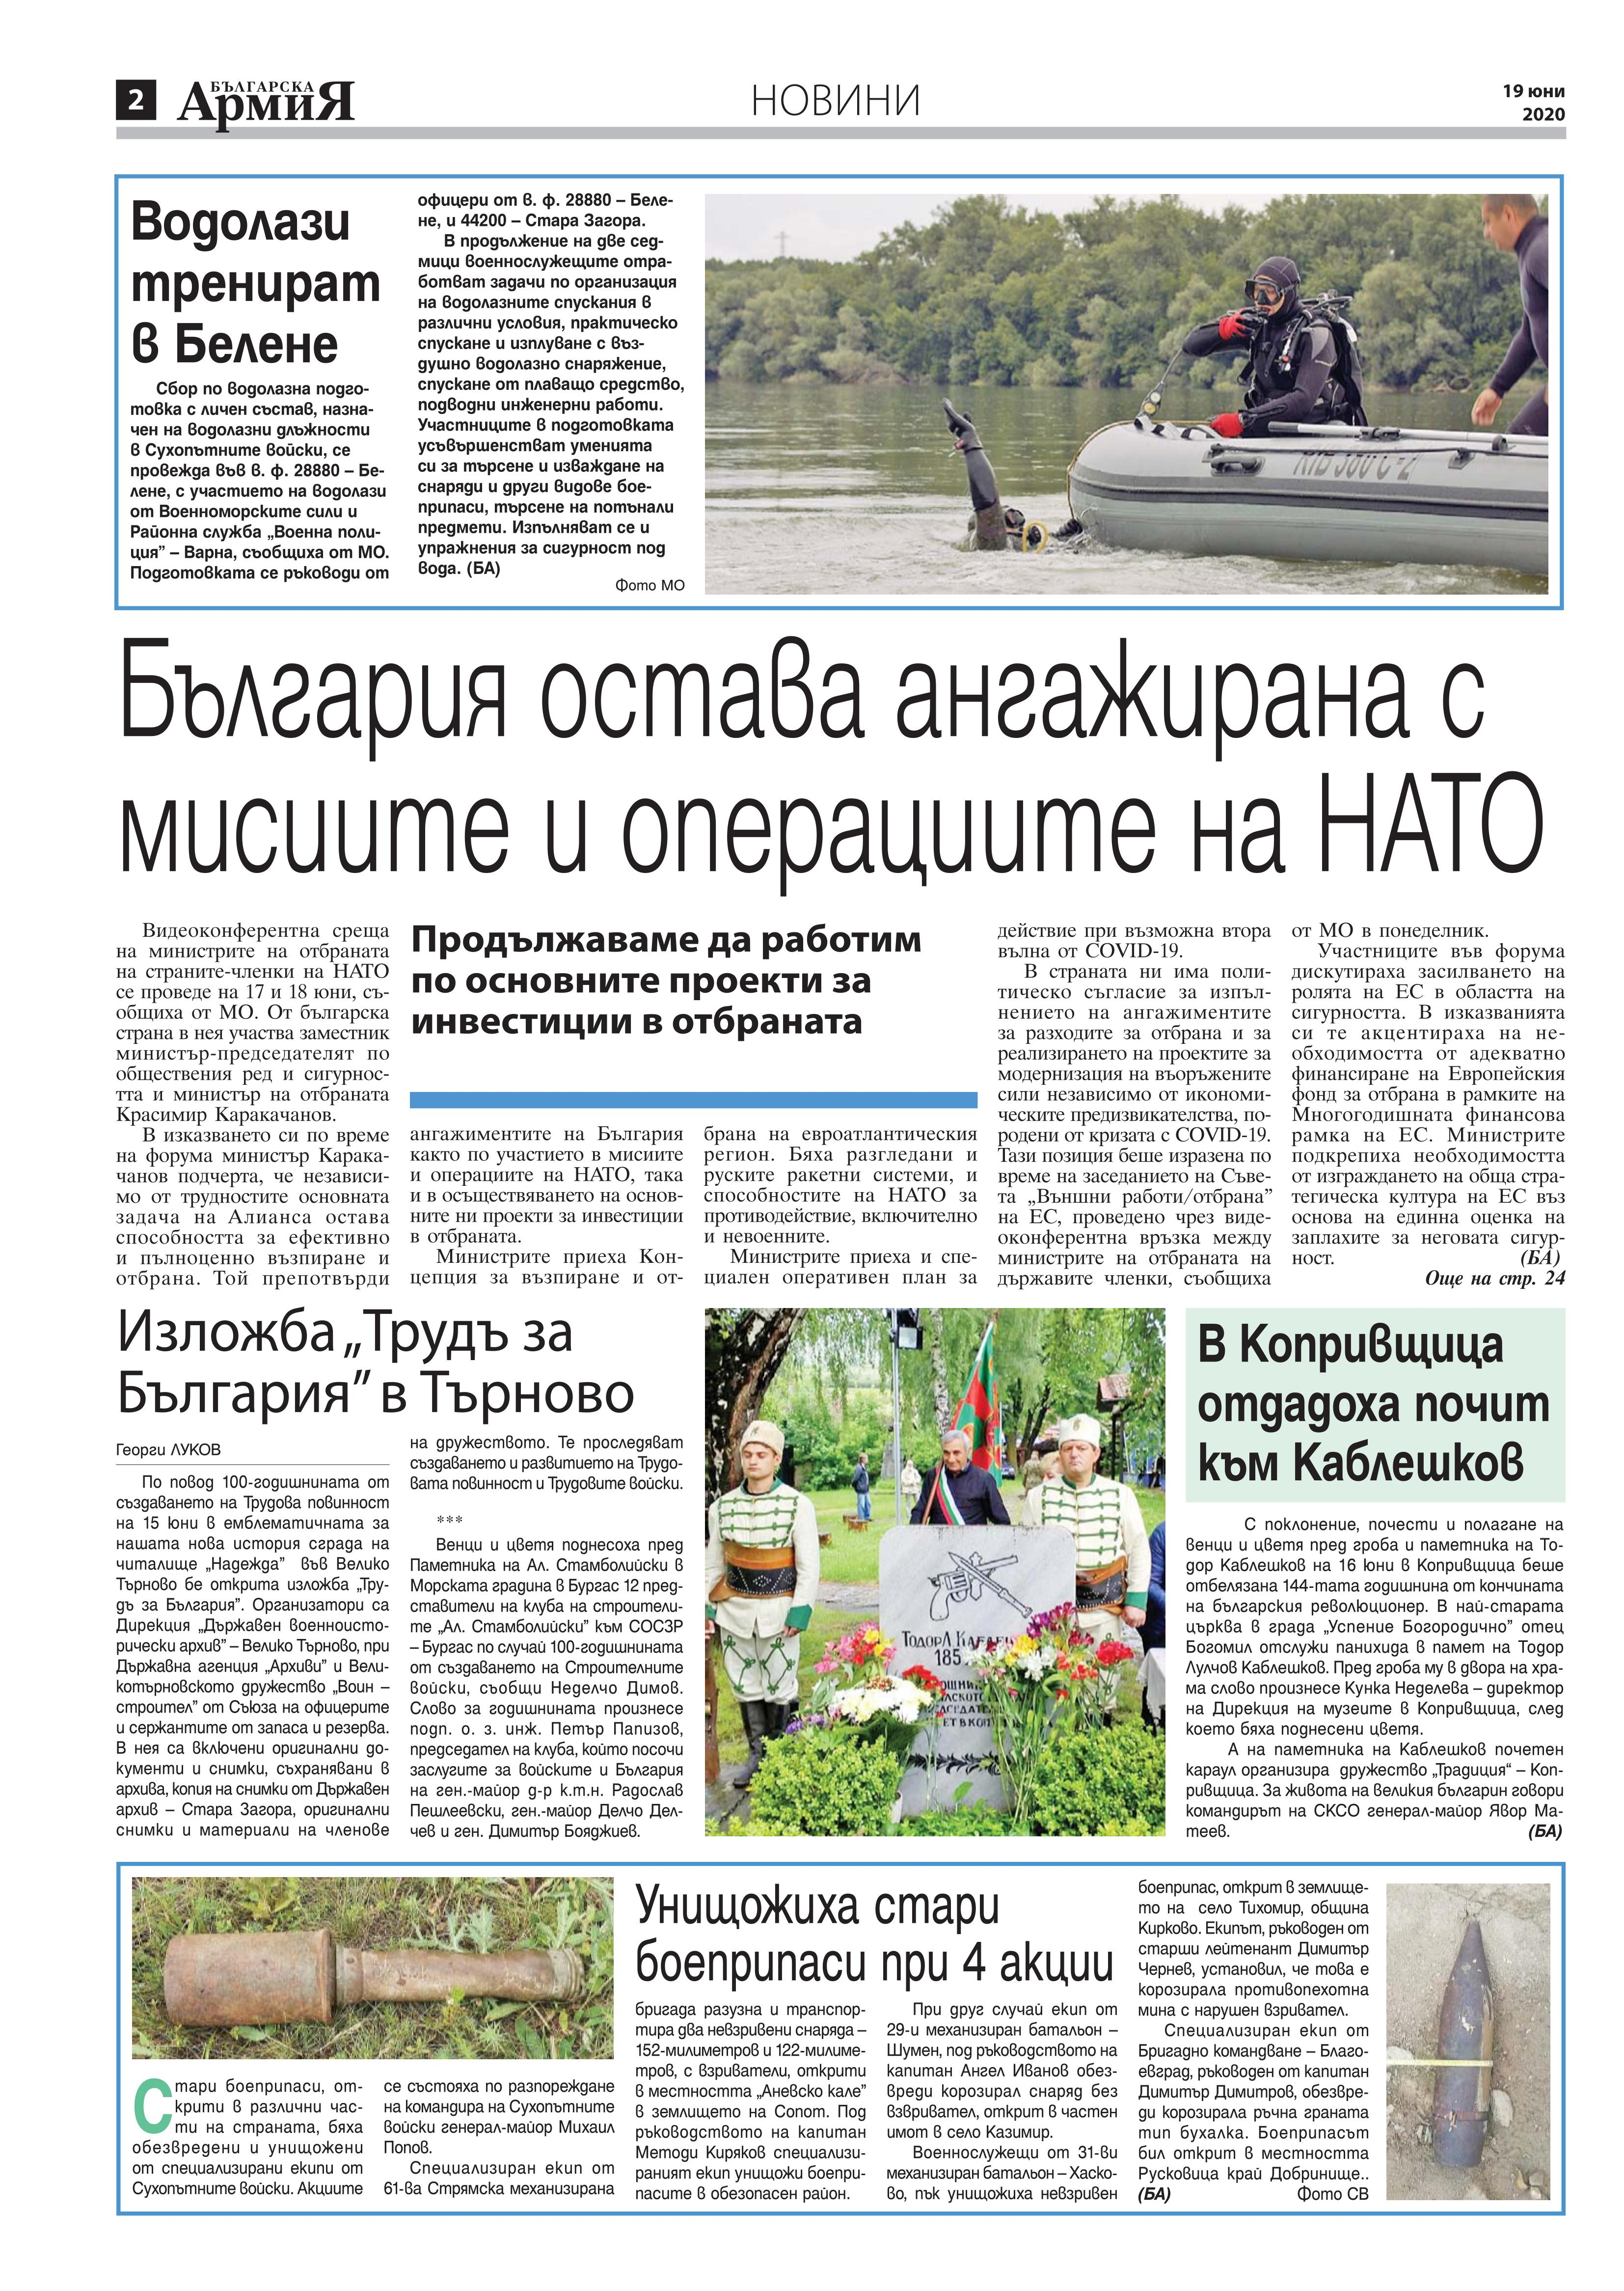 https://www.armymedia.bg/wp-content/uploads/2015/06/02.page1_-140.jpg